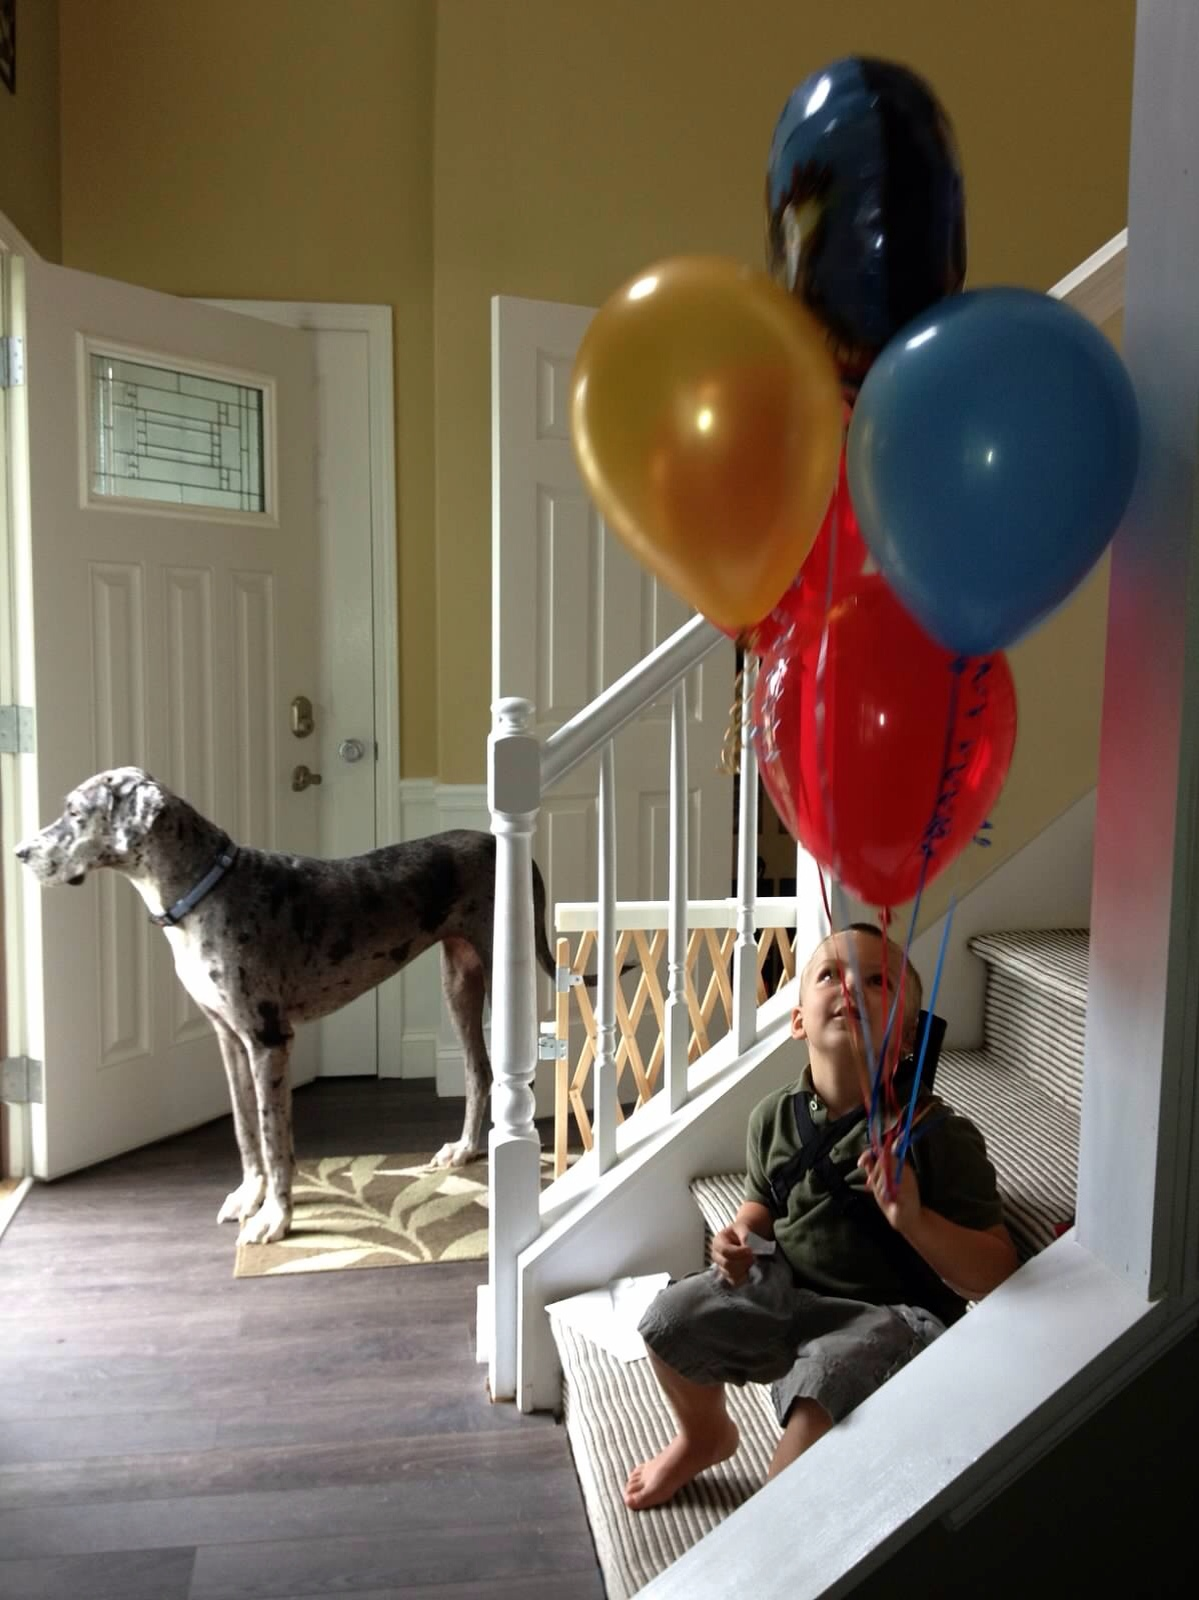 Foap-Boy__dog__and_balloons_